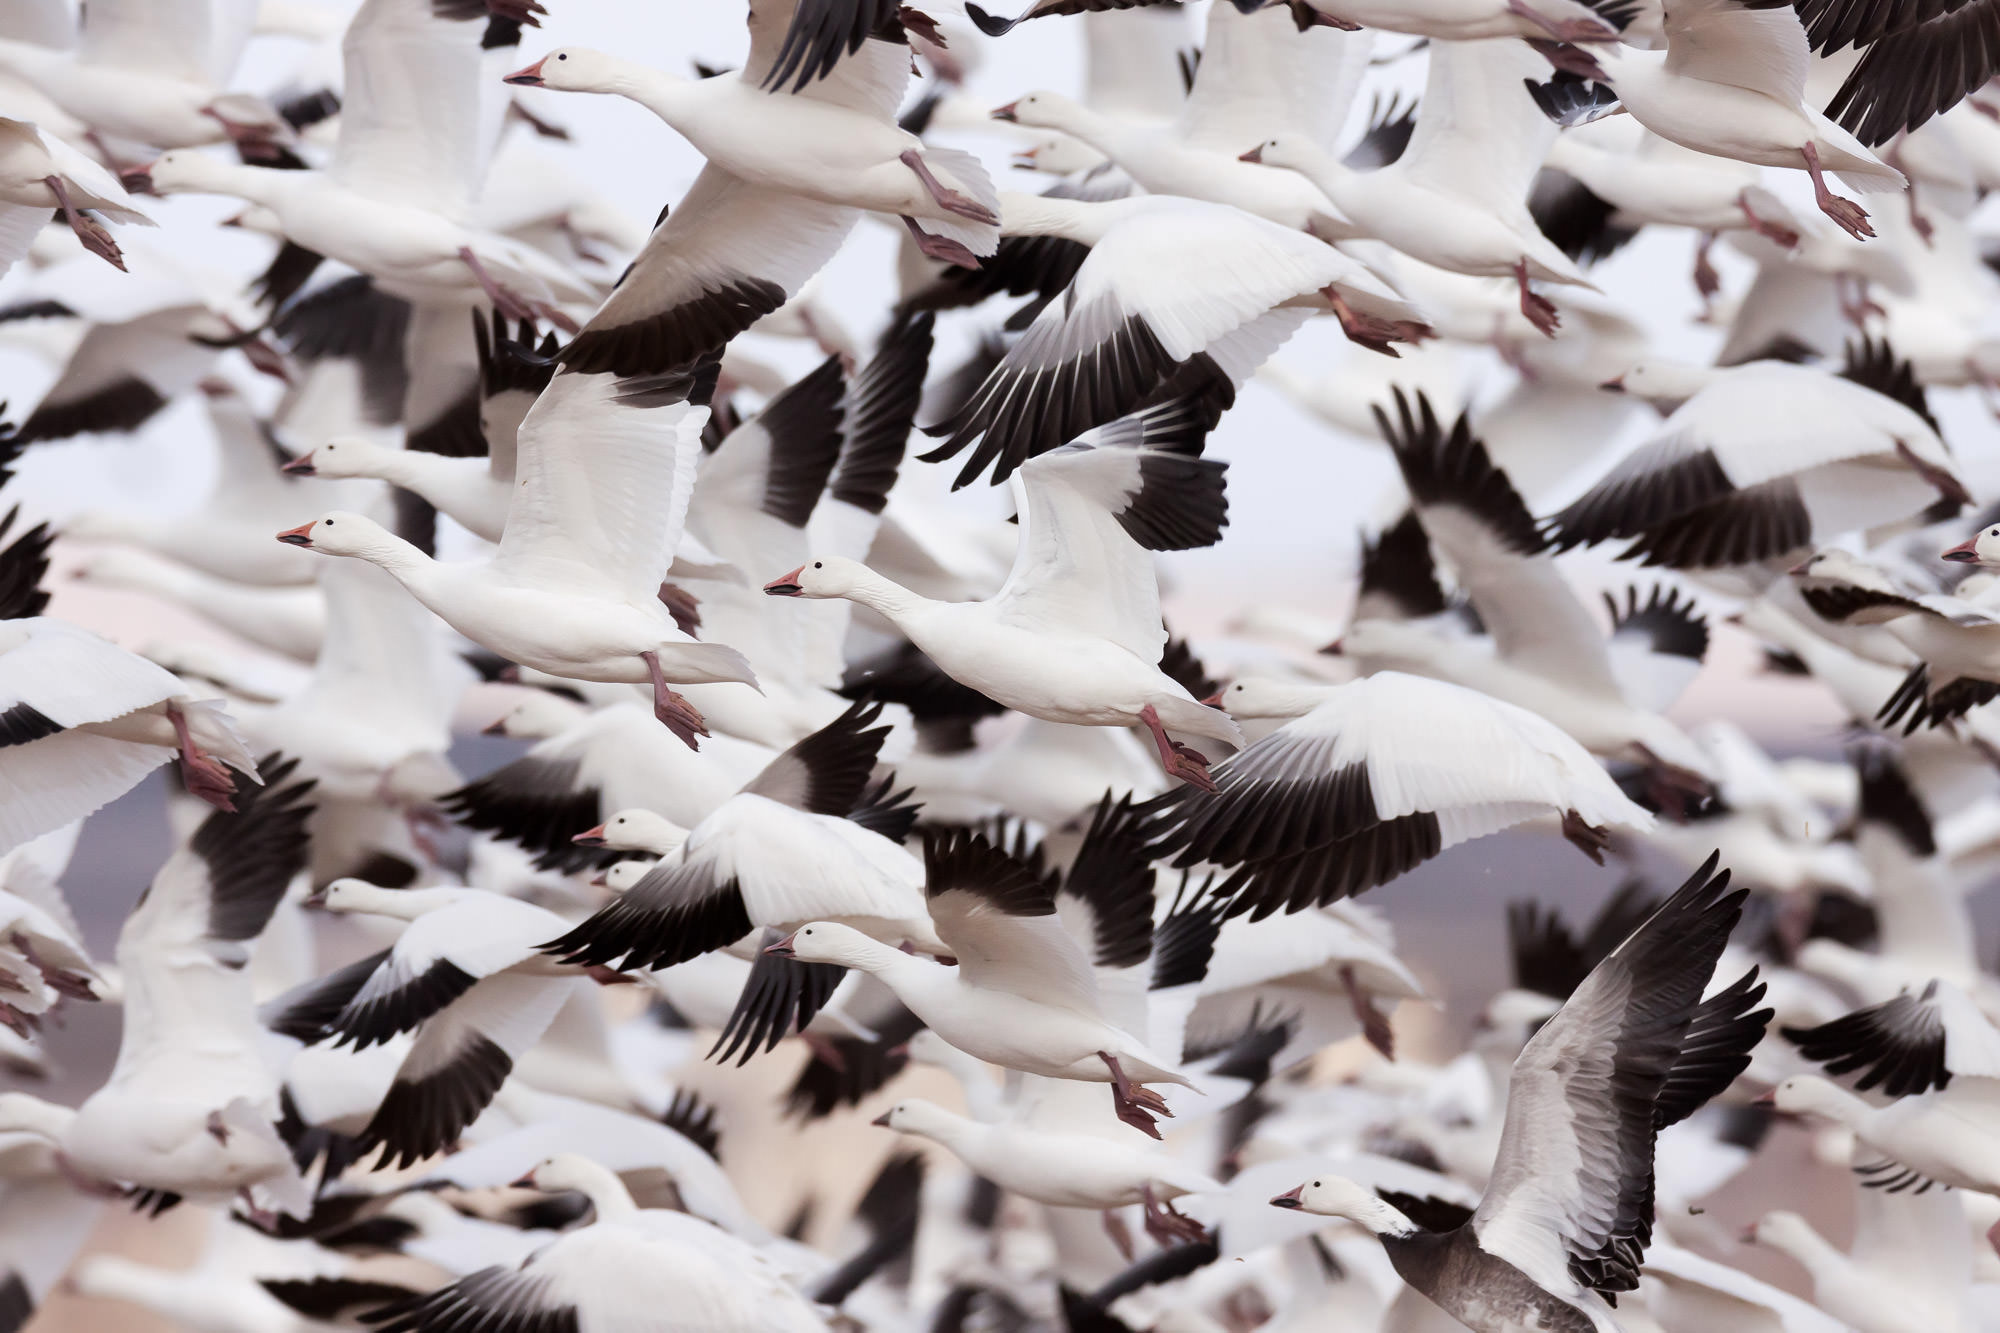 Geese, Snow Geese, New Mexico, Bosque del Apache, limited edition, photograph, fine art, wildlife, photo